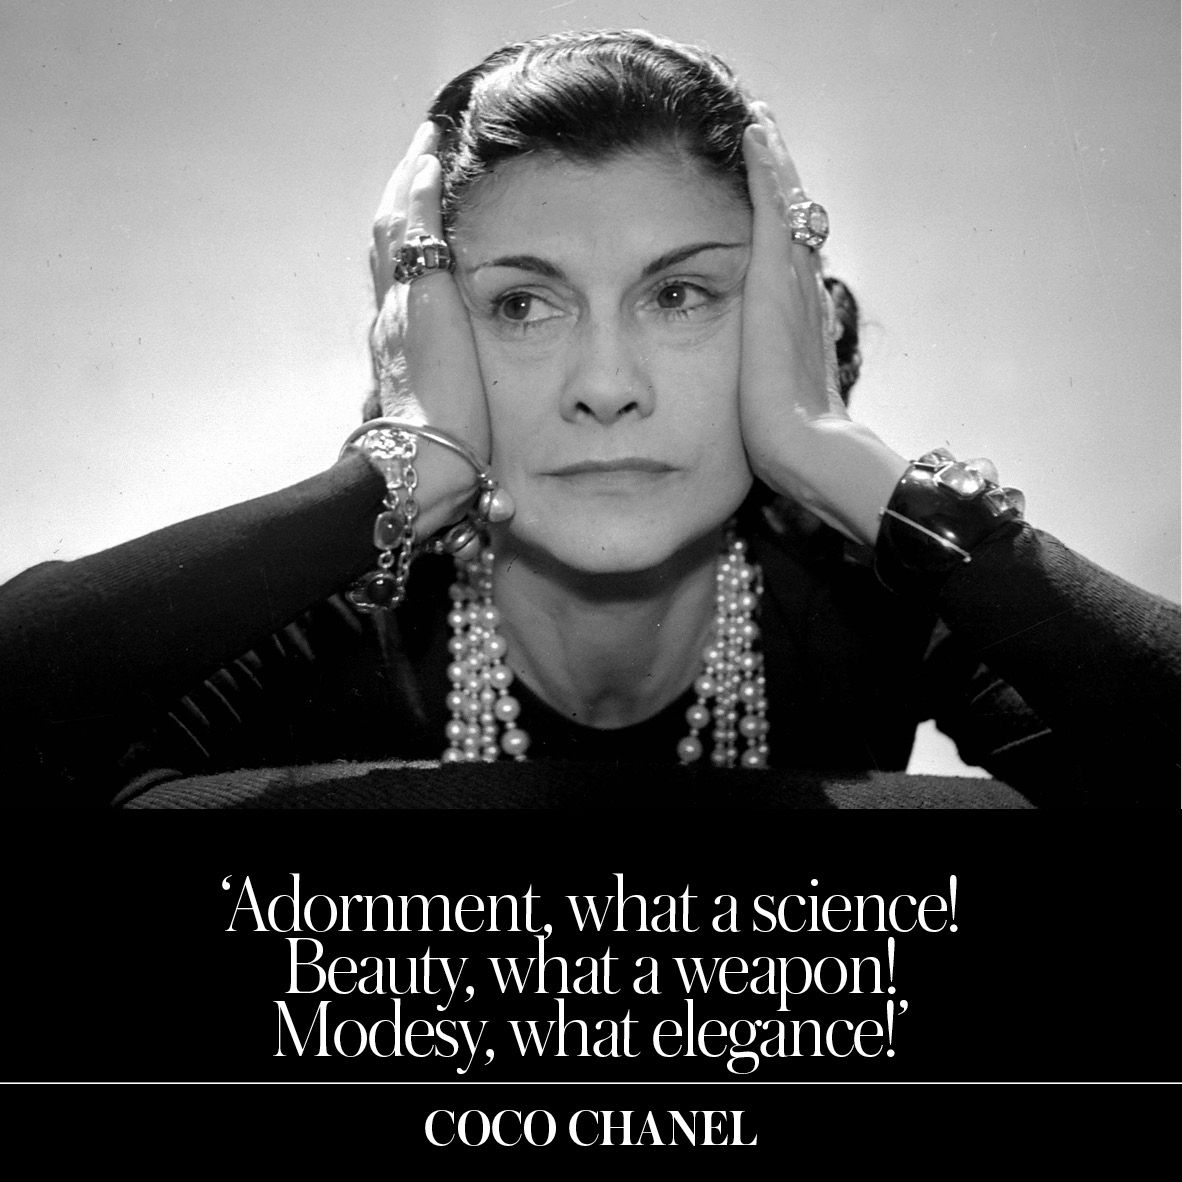 14 Coco Chanel quotes every Smart Woman should live by | Inspiring